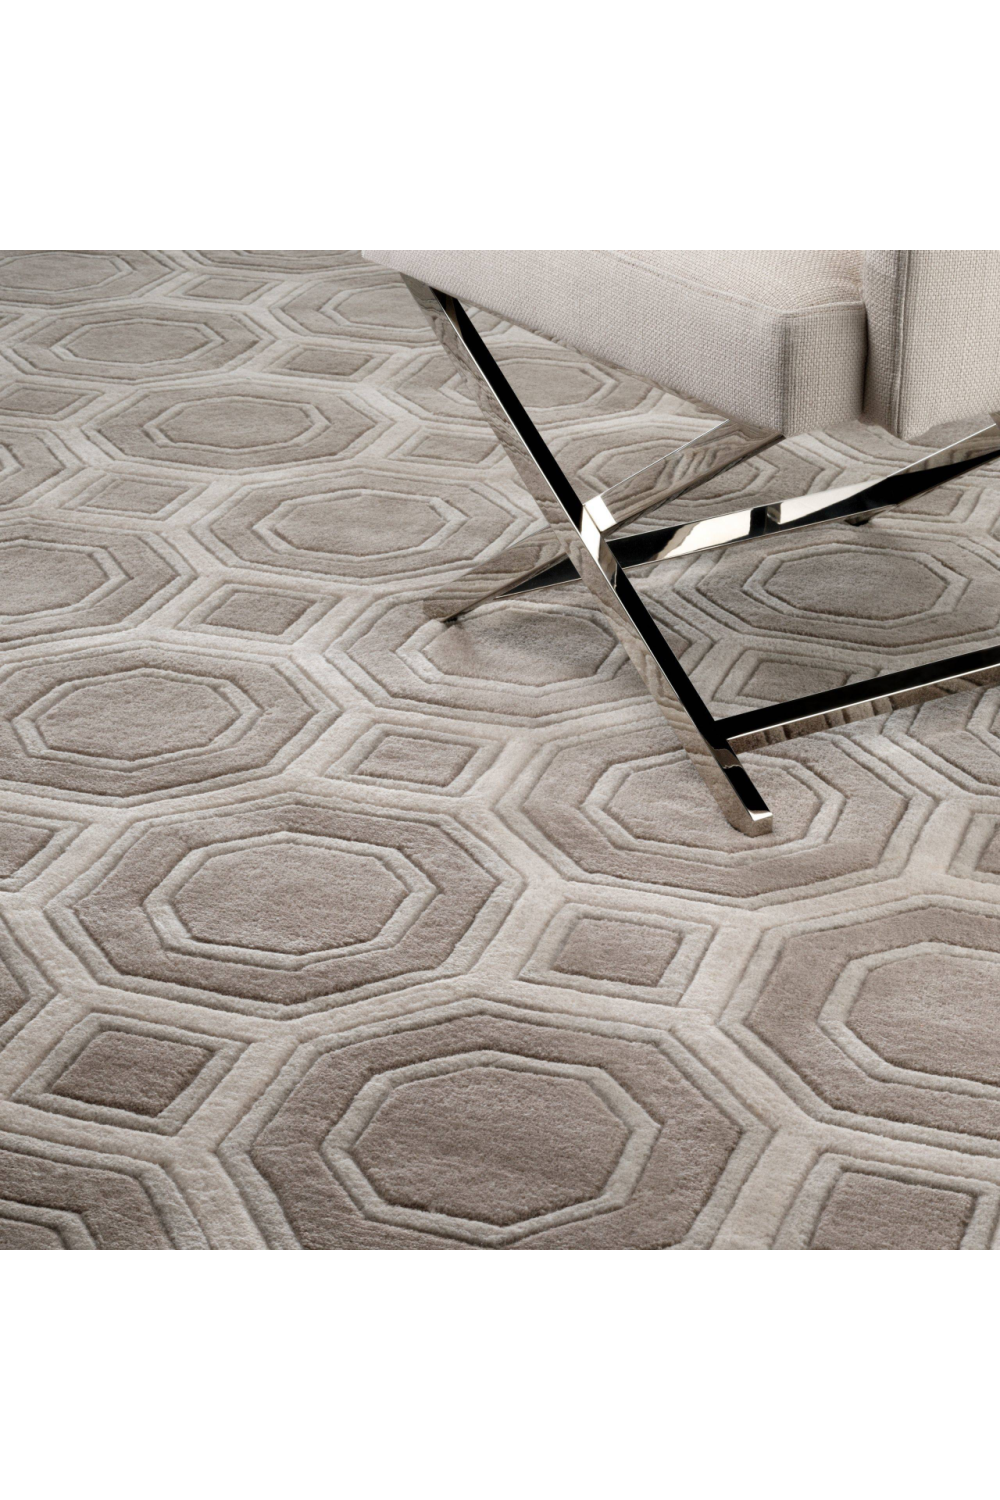 Gray Rug | Eichholtz Shaw (10x13) | OROA Modern & Luxury Furniture